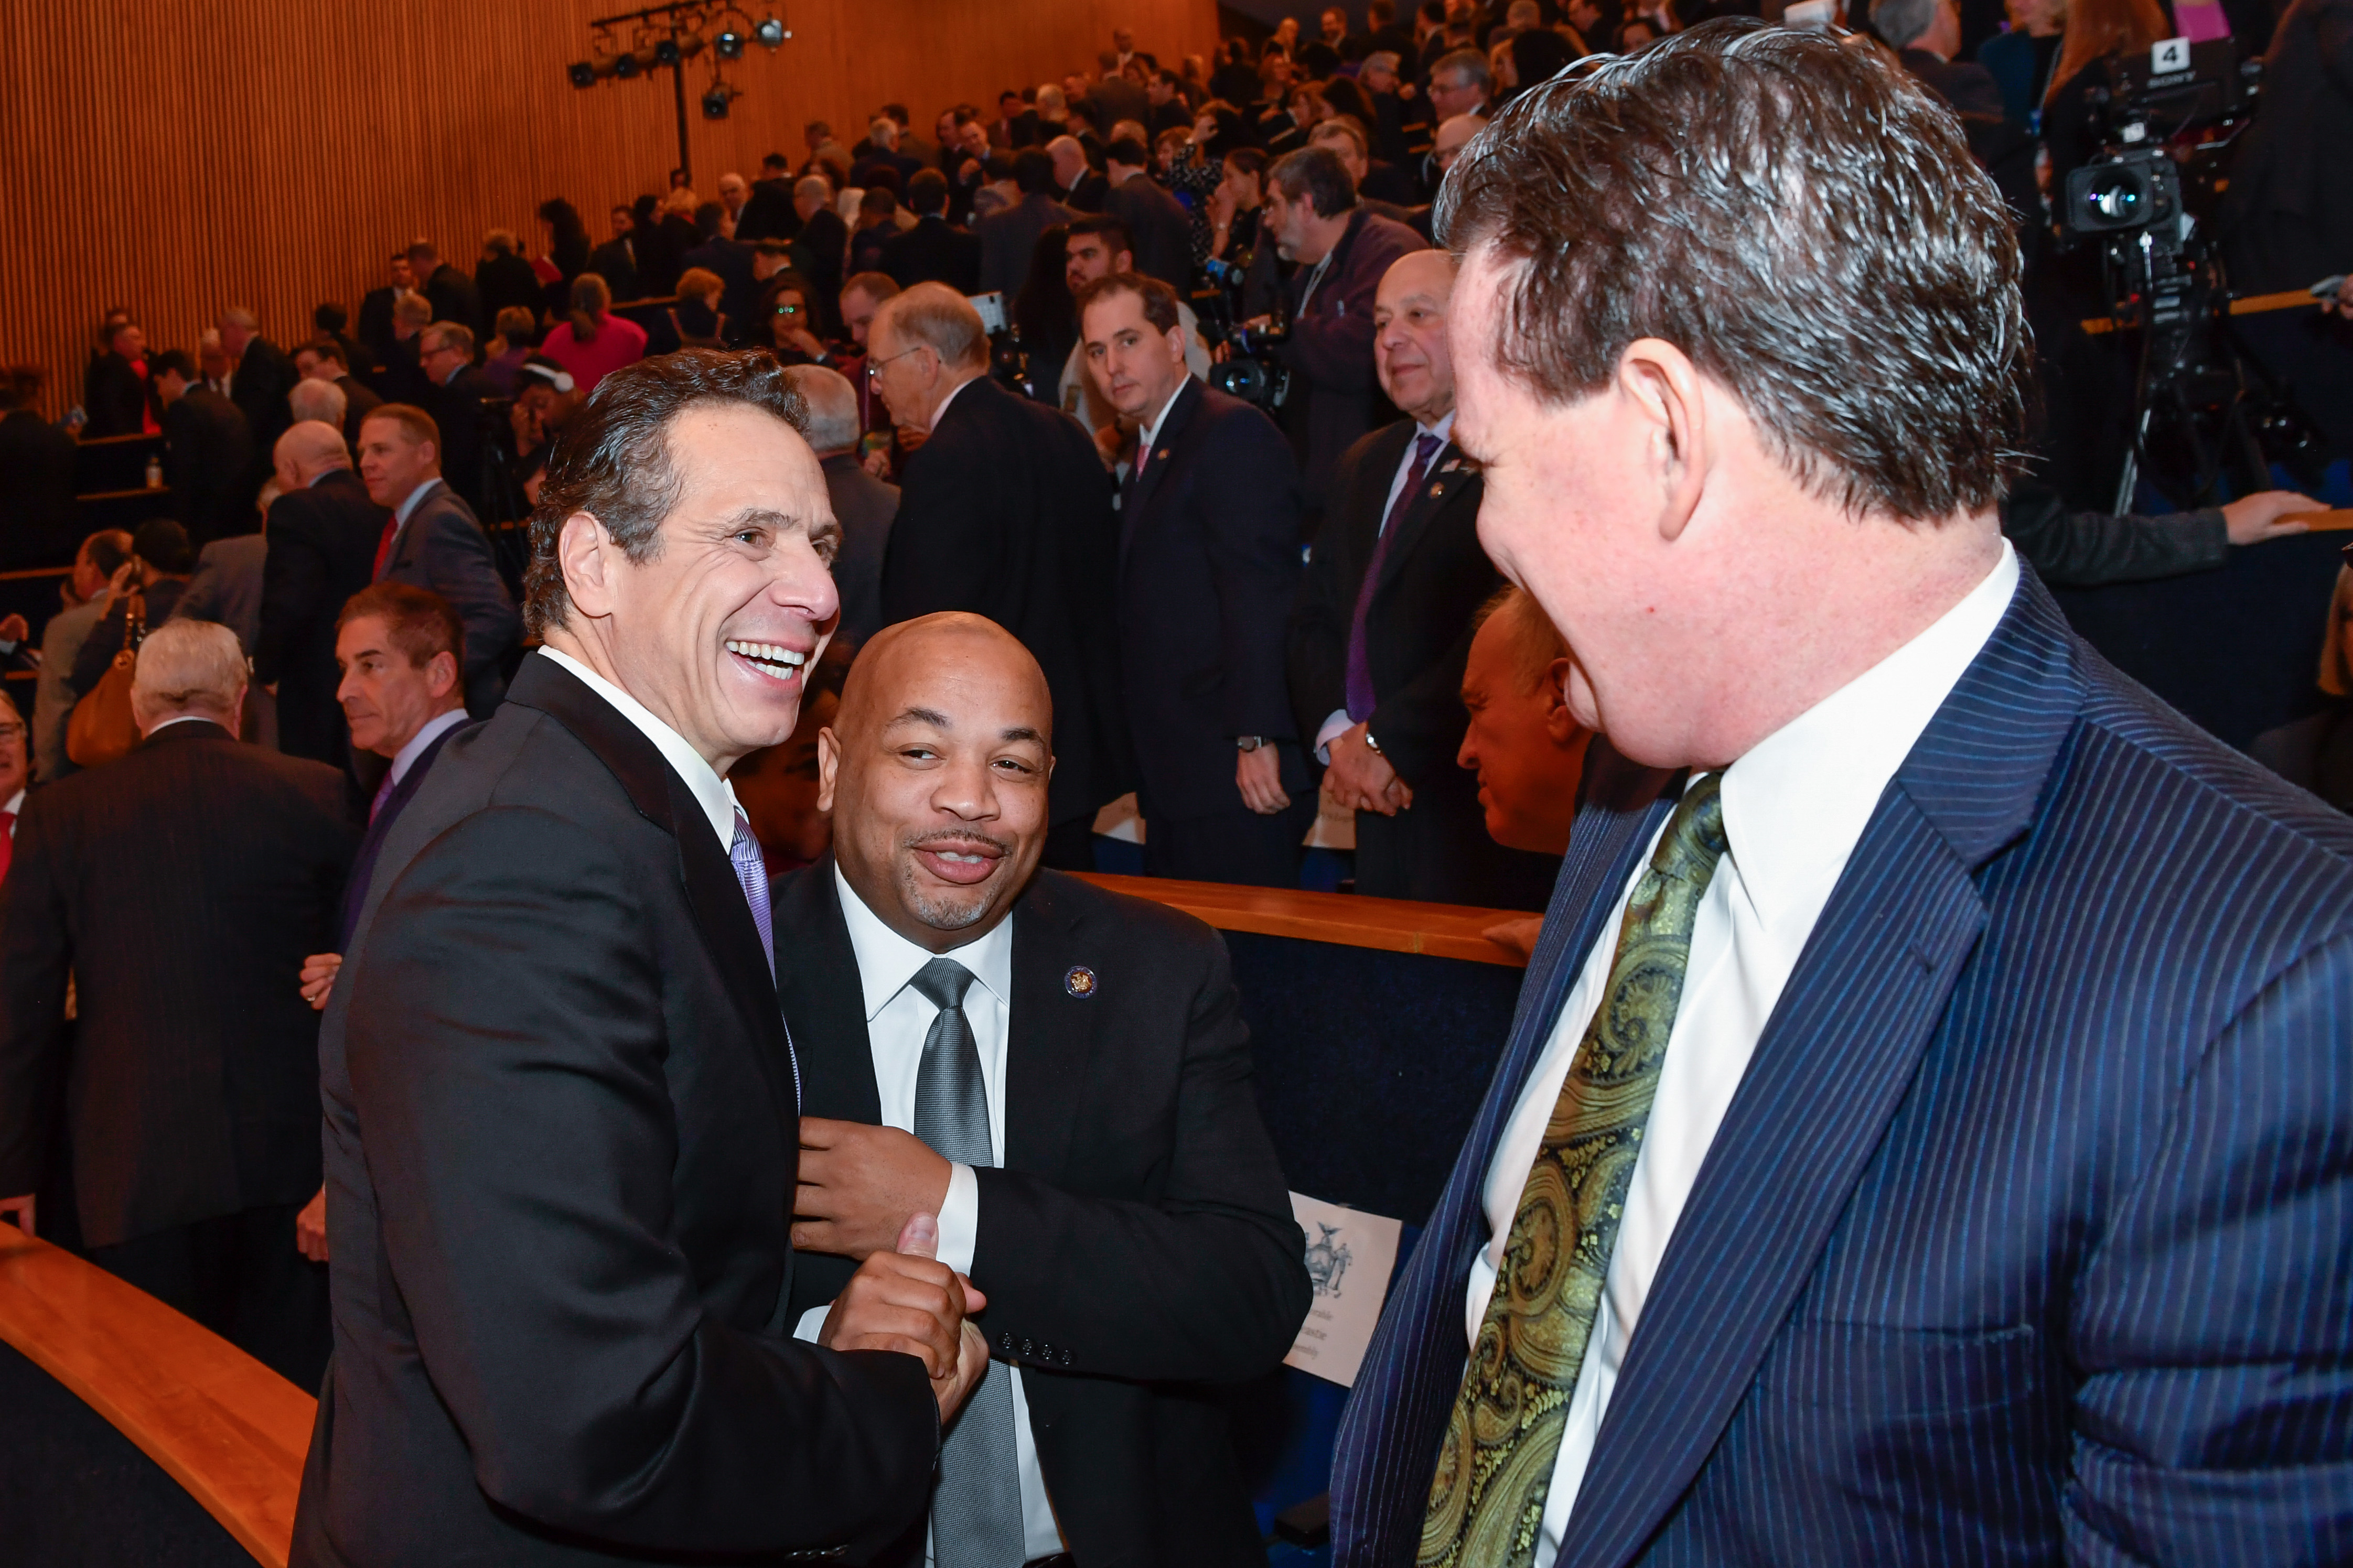 Governor Cuomo shakes hands with Assembly Speaker Heastie after his executive budget address.